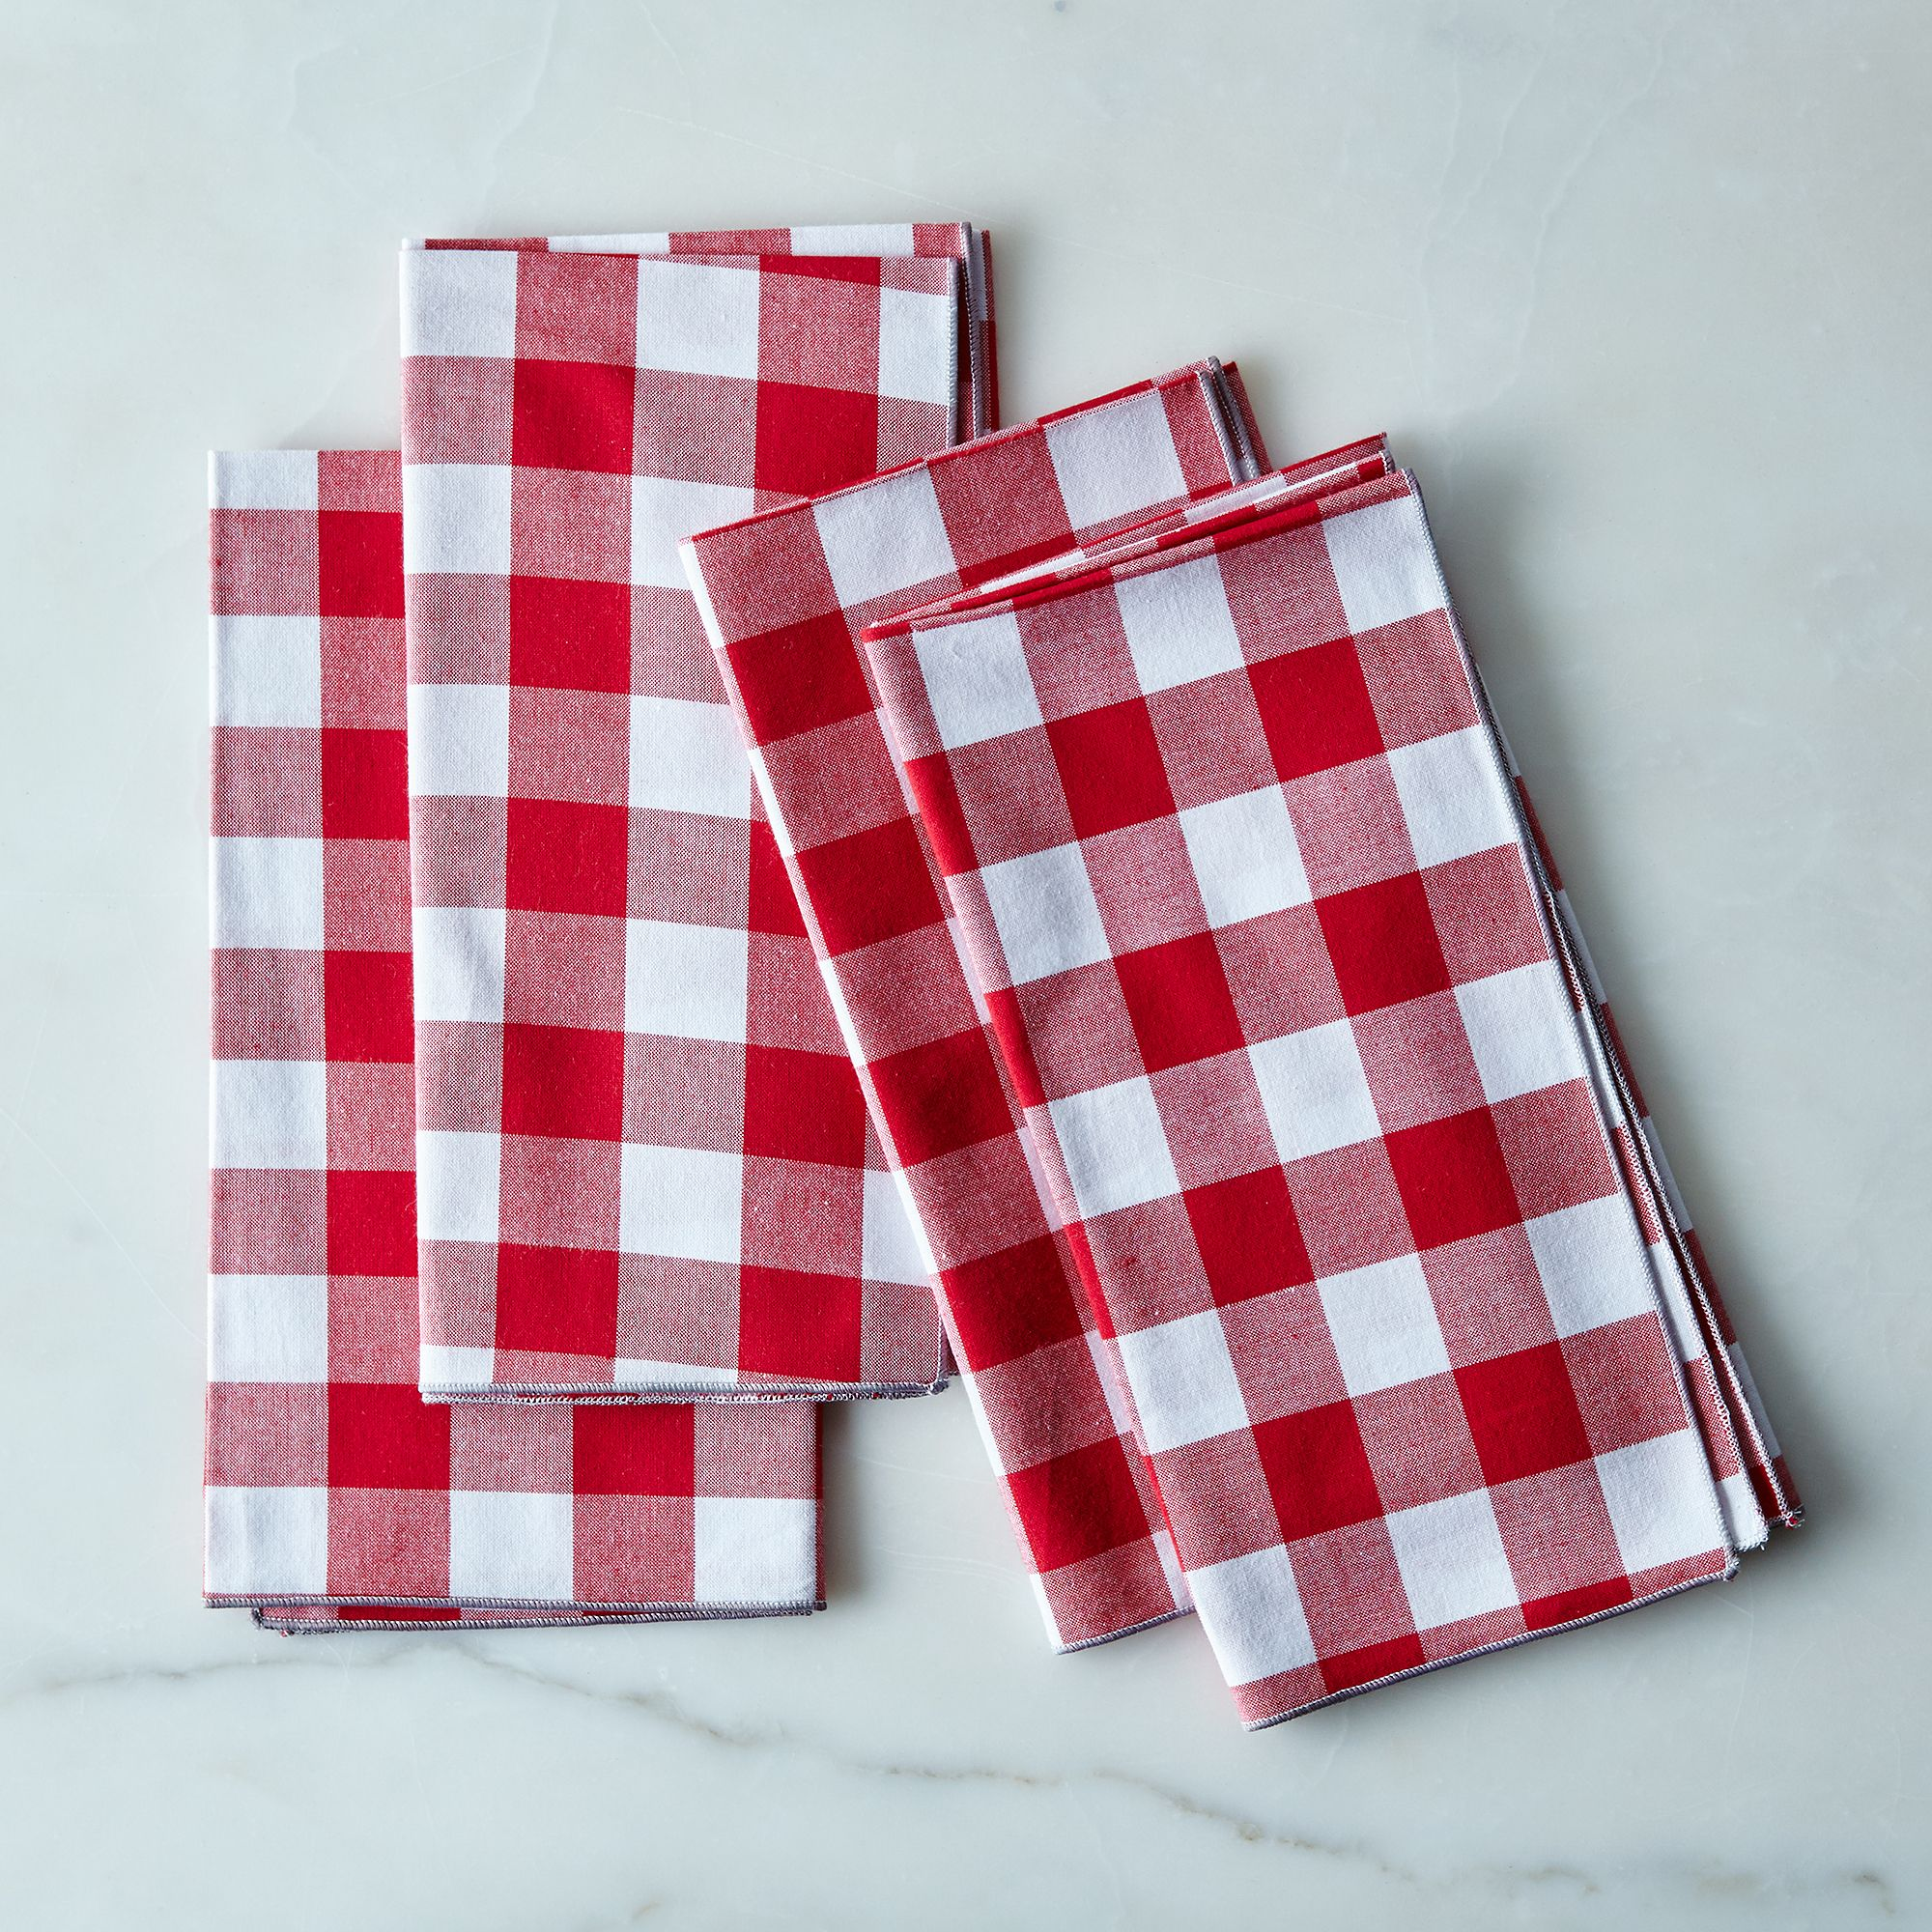 Gingham Cloth Napkins (Set of 4) - Red/White